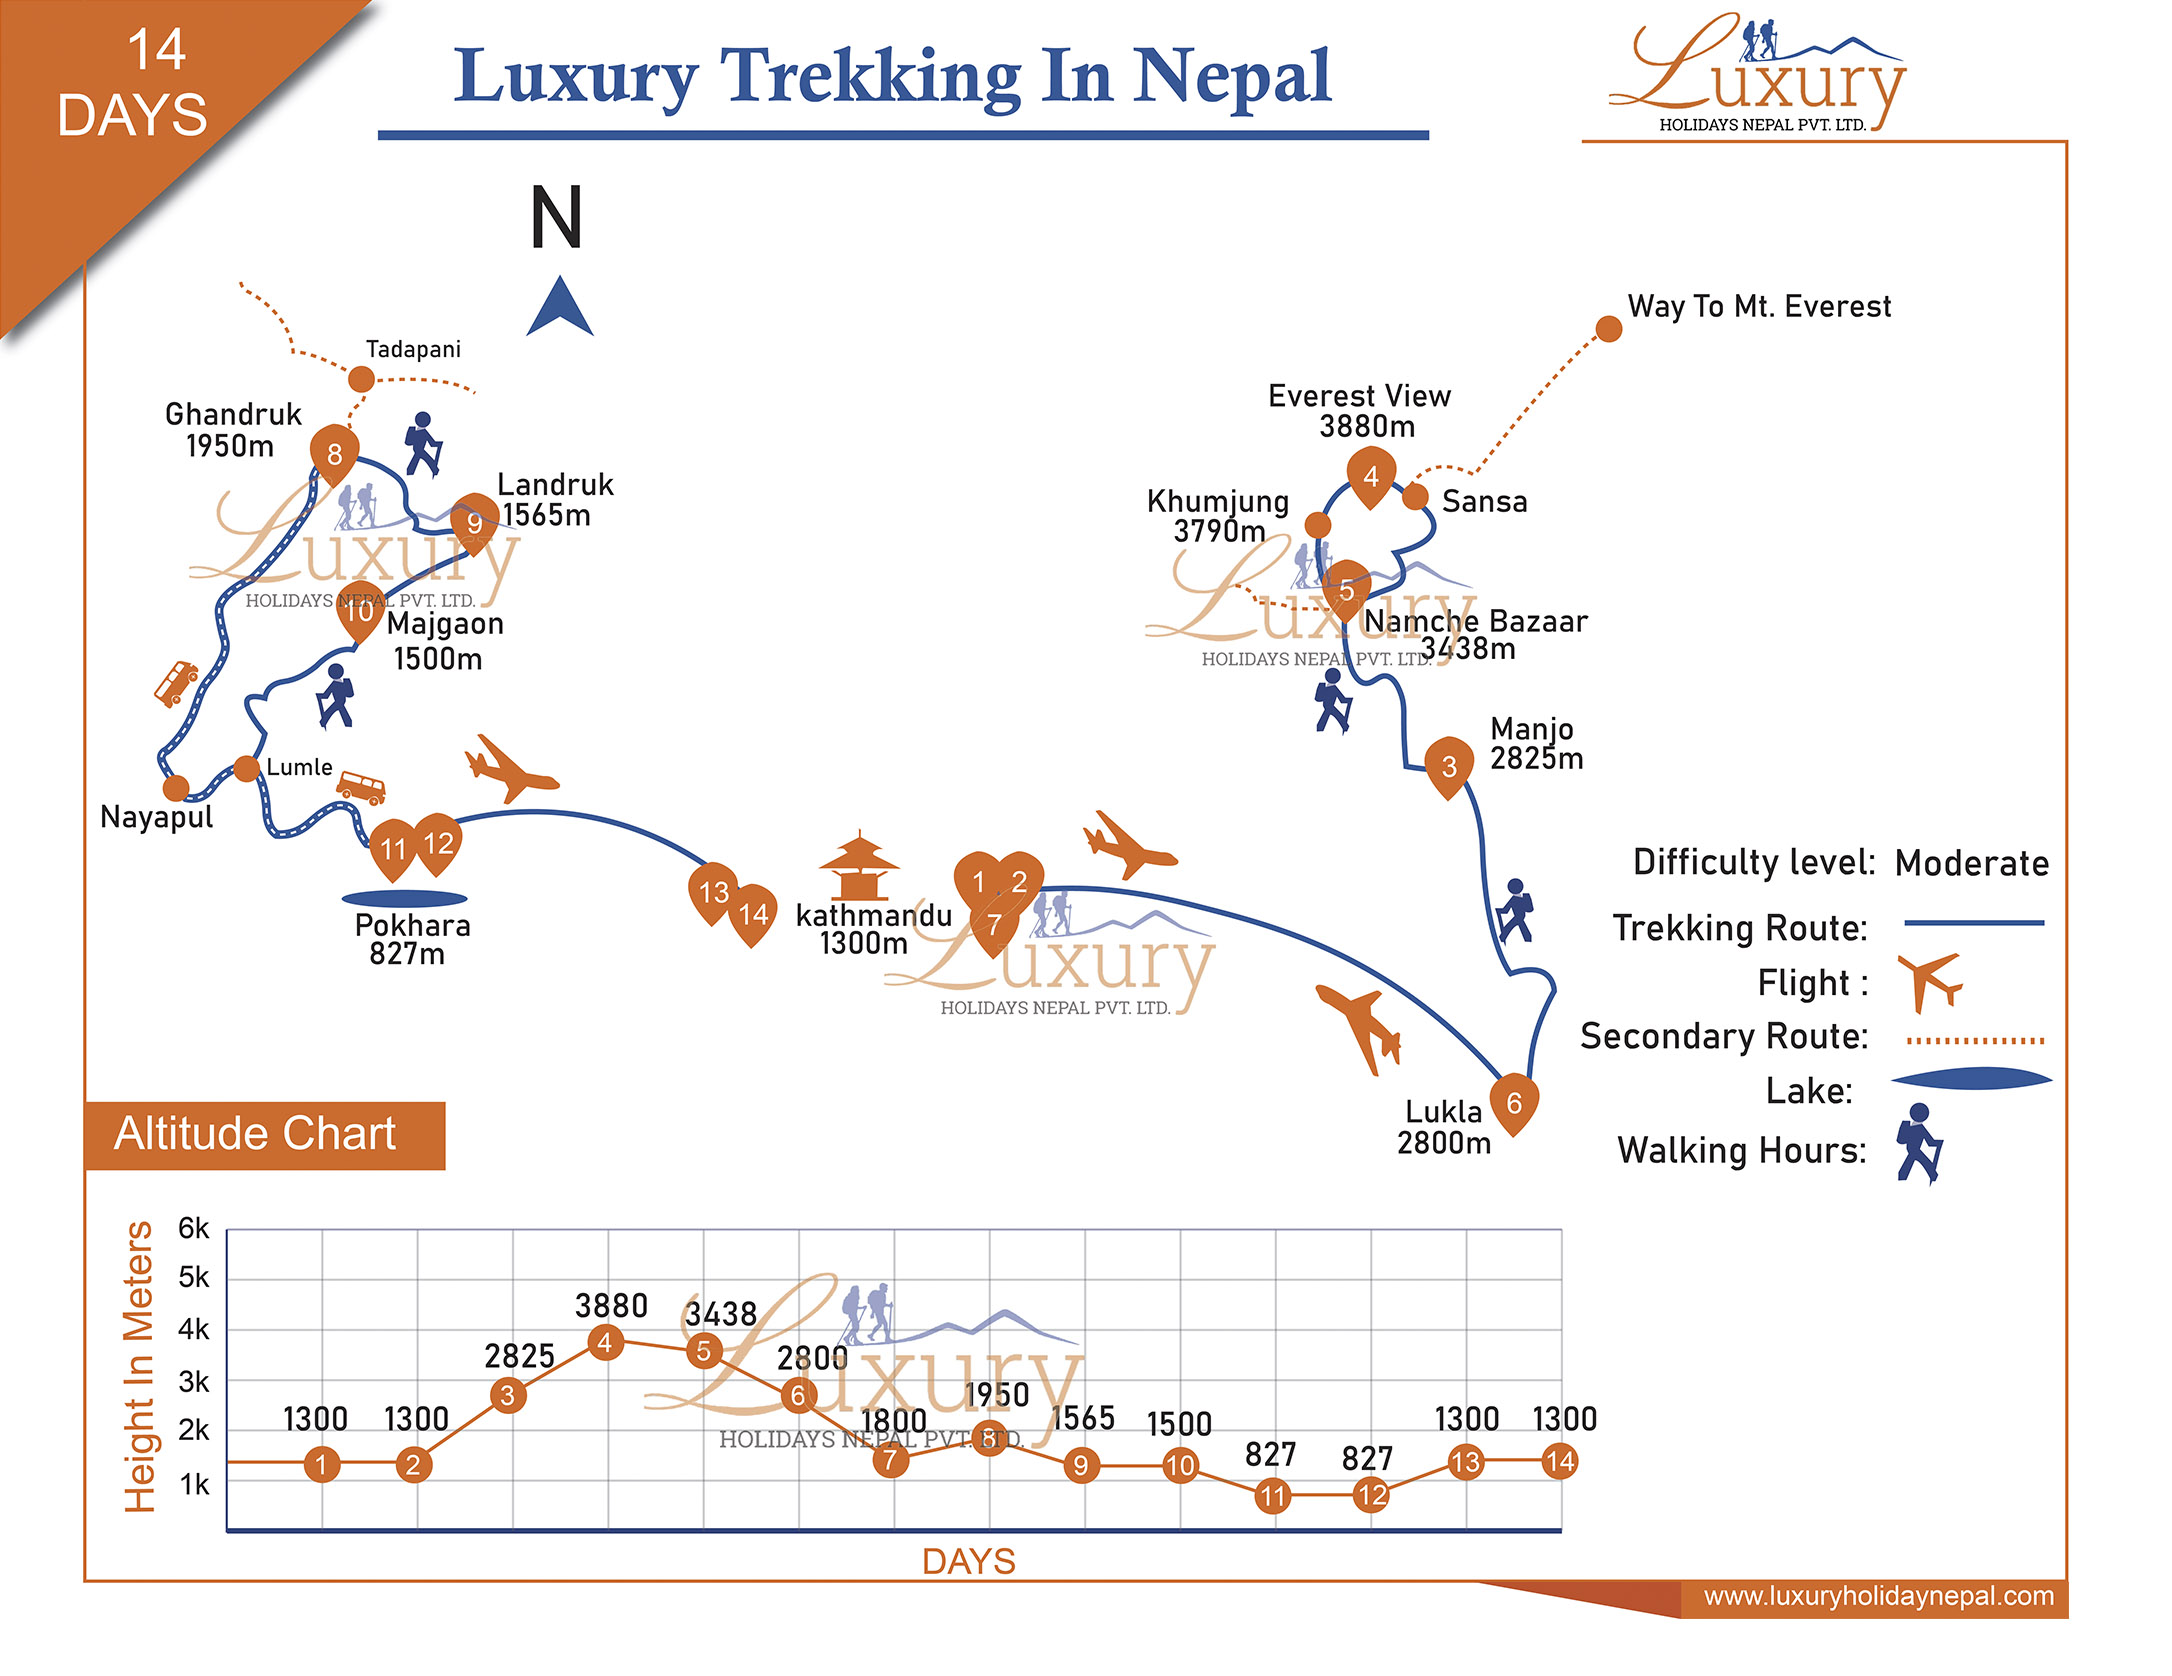 Luxury Trekking in Nepal Trip Map